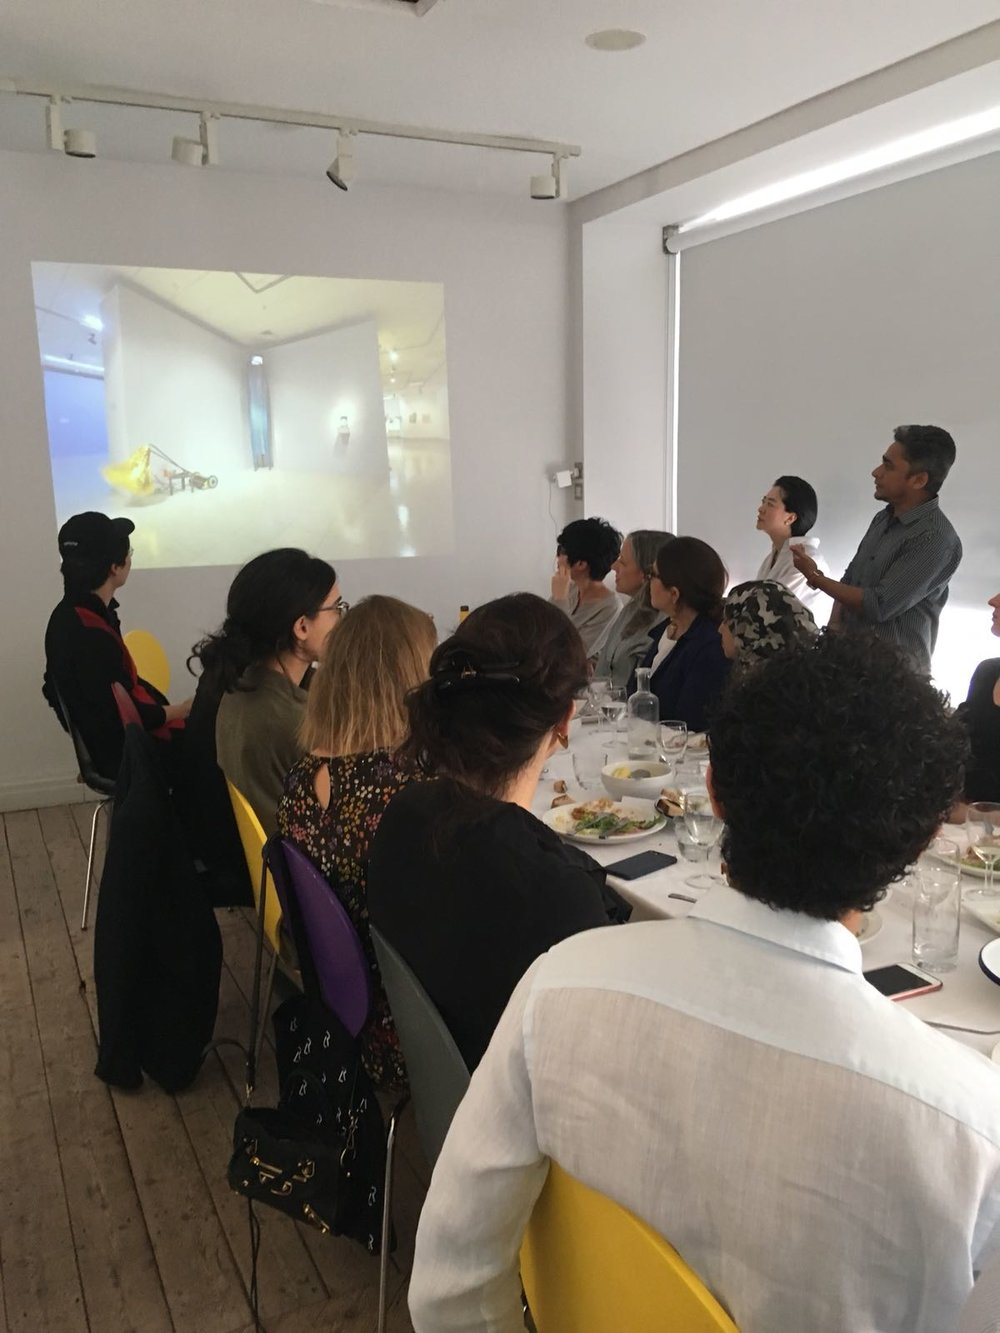 Mizanur Rahman Chowdhury giving a presentation on his work during a Delfina Foundation dinner. Image courtesy of Chowdhury.